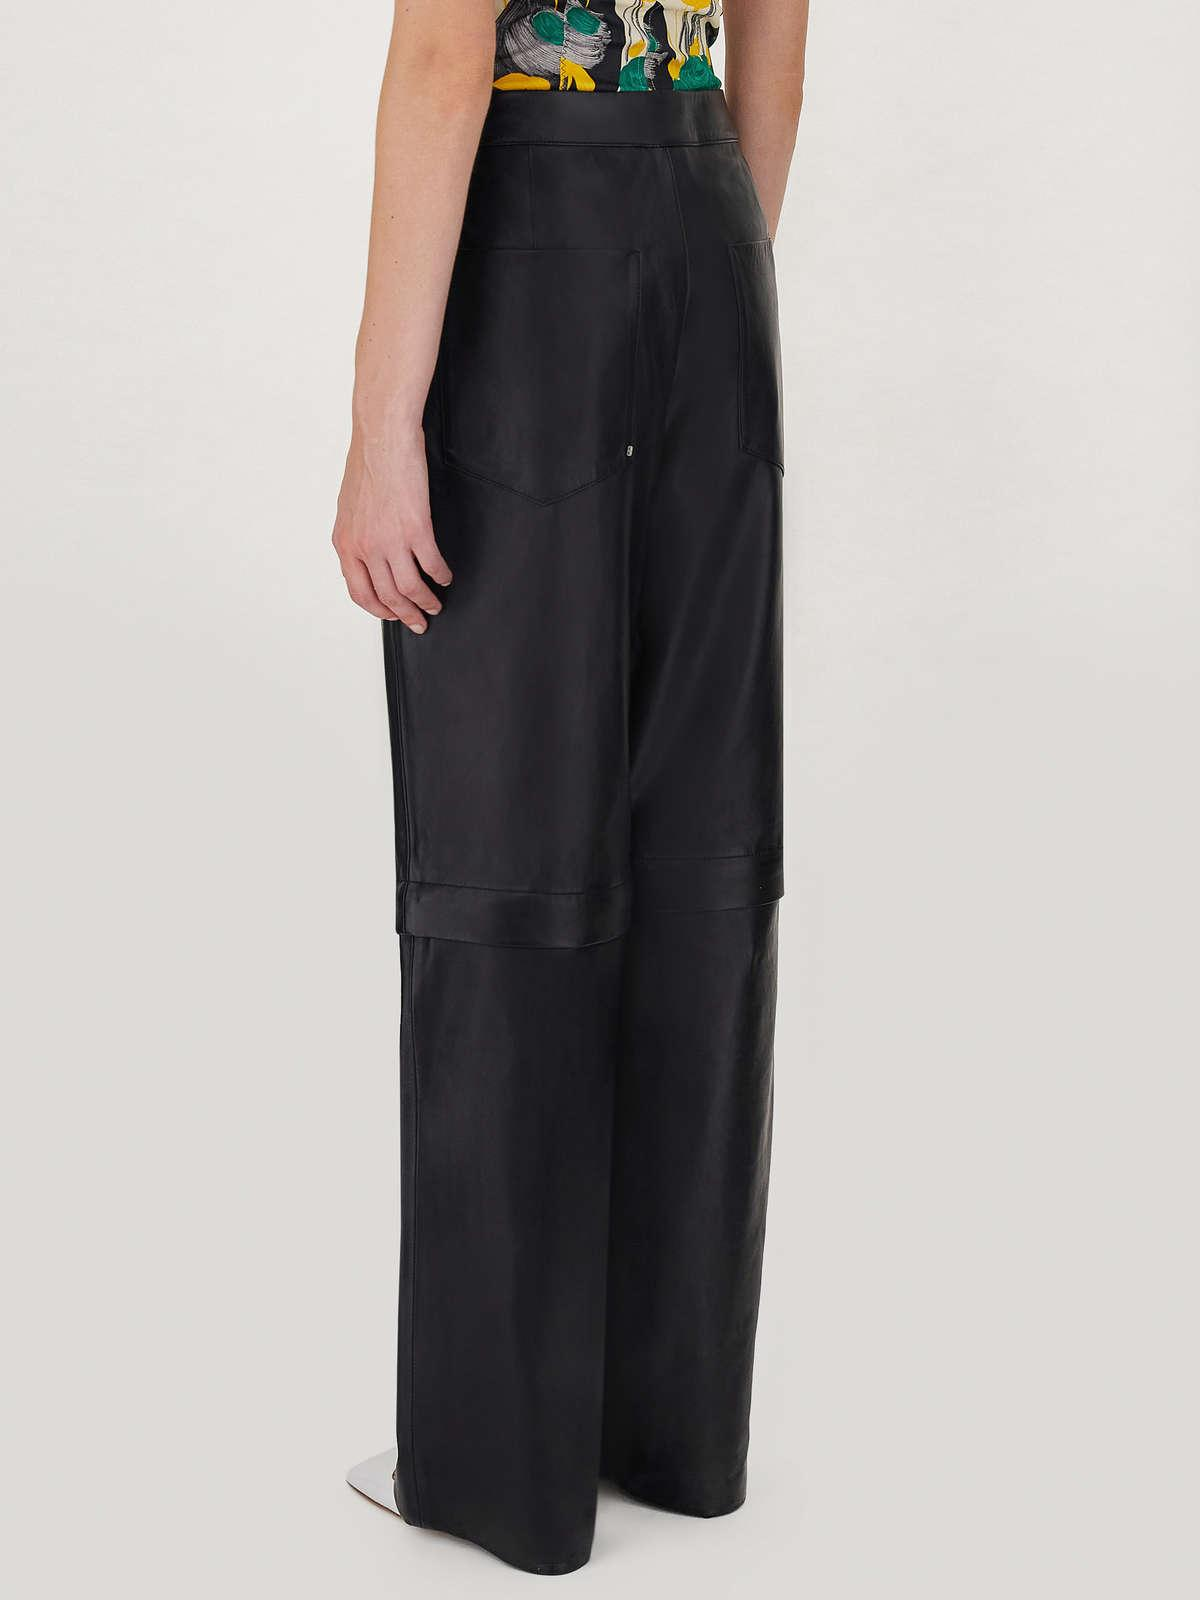 Womens Max Mara Trousers And Jeans | 2-In-1 Nappa Leather Trousers Black